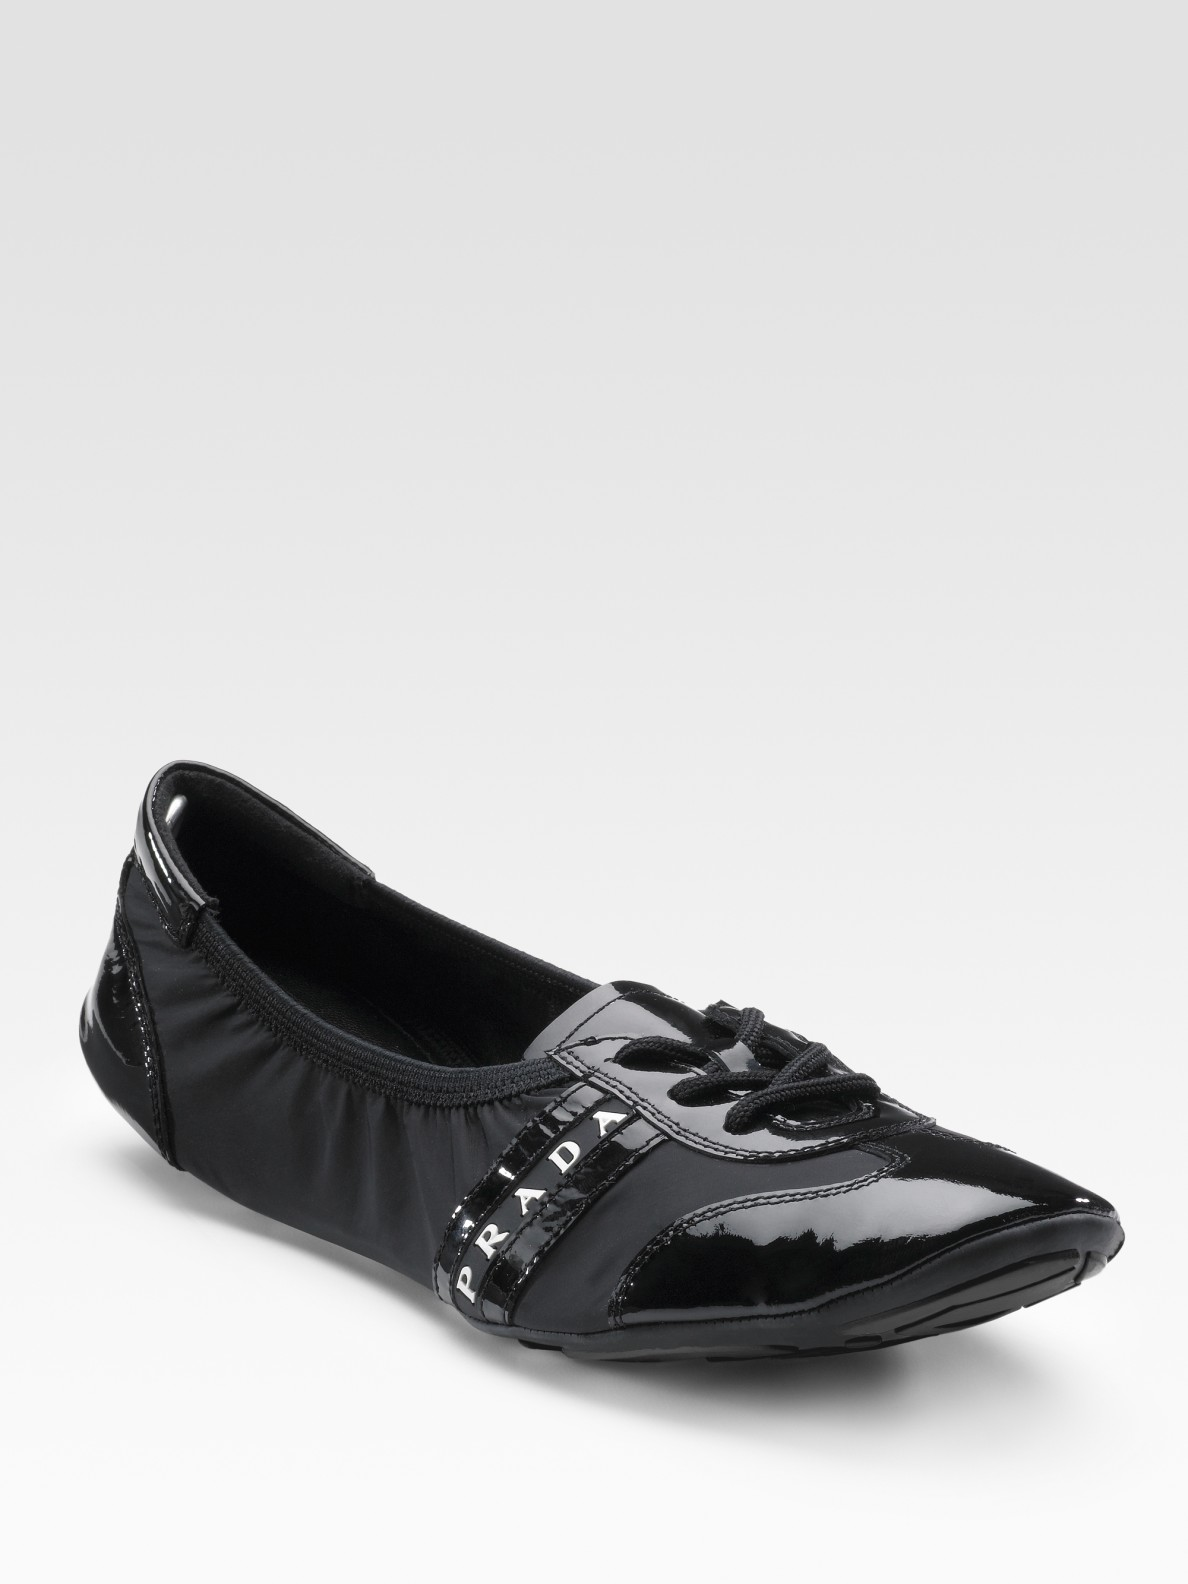 With superior construction and amazing quality, flat shoes from Lulus are absolutely adorable and affordable. Free shipping + returns! Lace-Ups Lace-Up Heels. Quinnly Black Pointed Toe Flats .